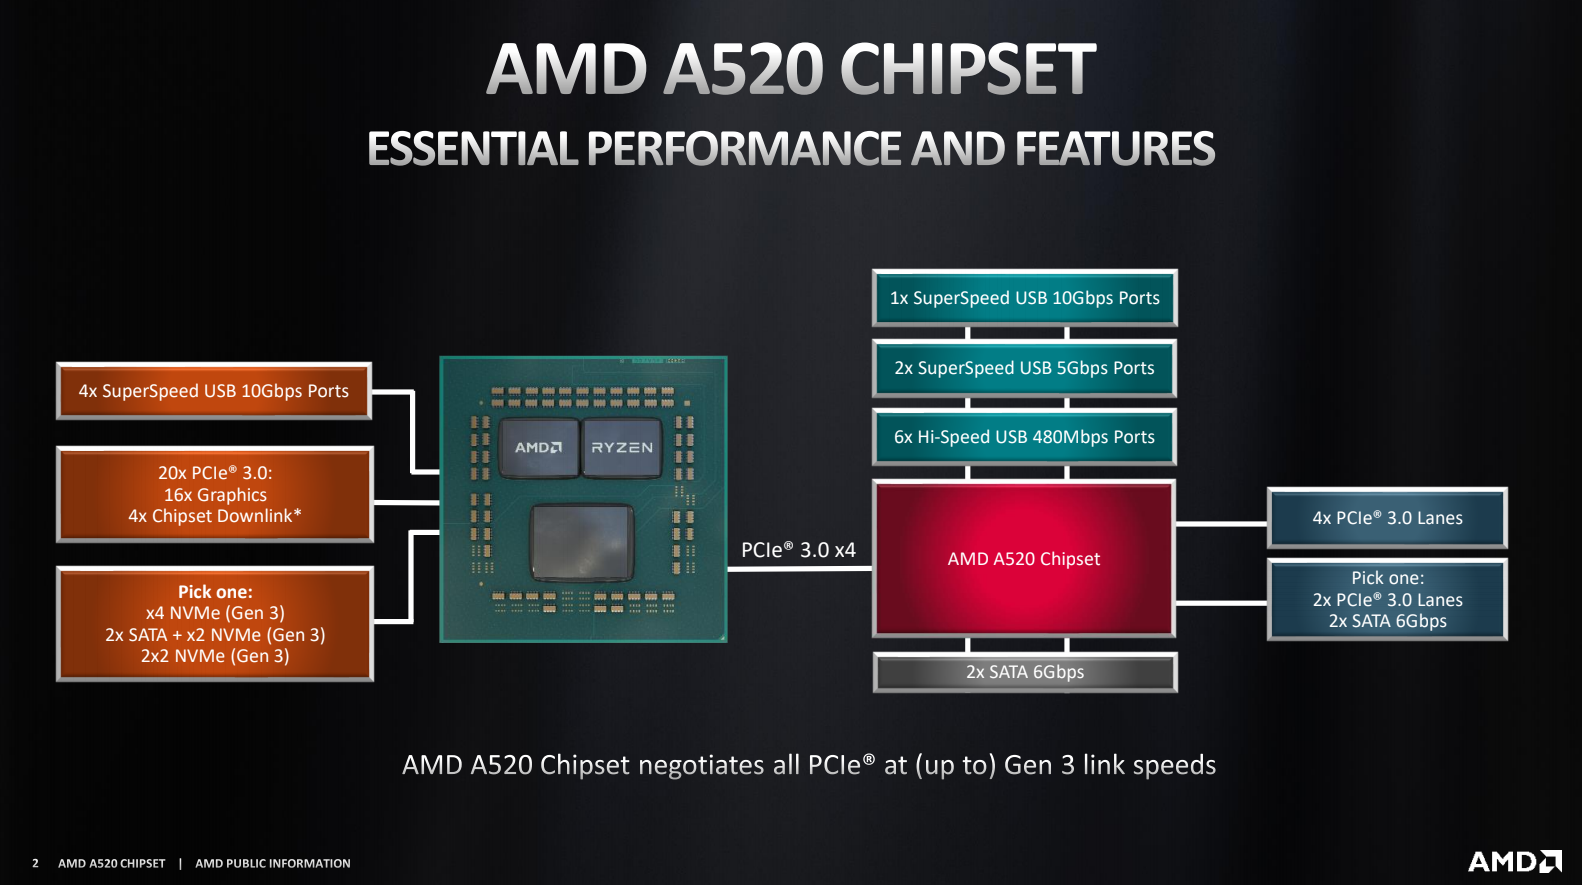 AMD A520 Chipset Specs Comparison vs. B550, A320, X570, & More   GamersNexus - Gaming PC Builds & Hardware Benchmarks